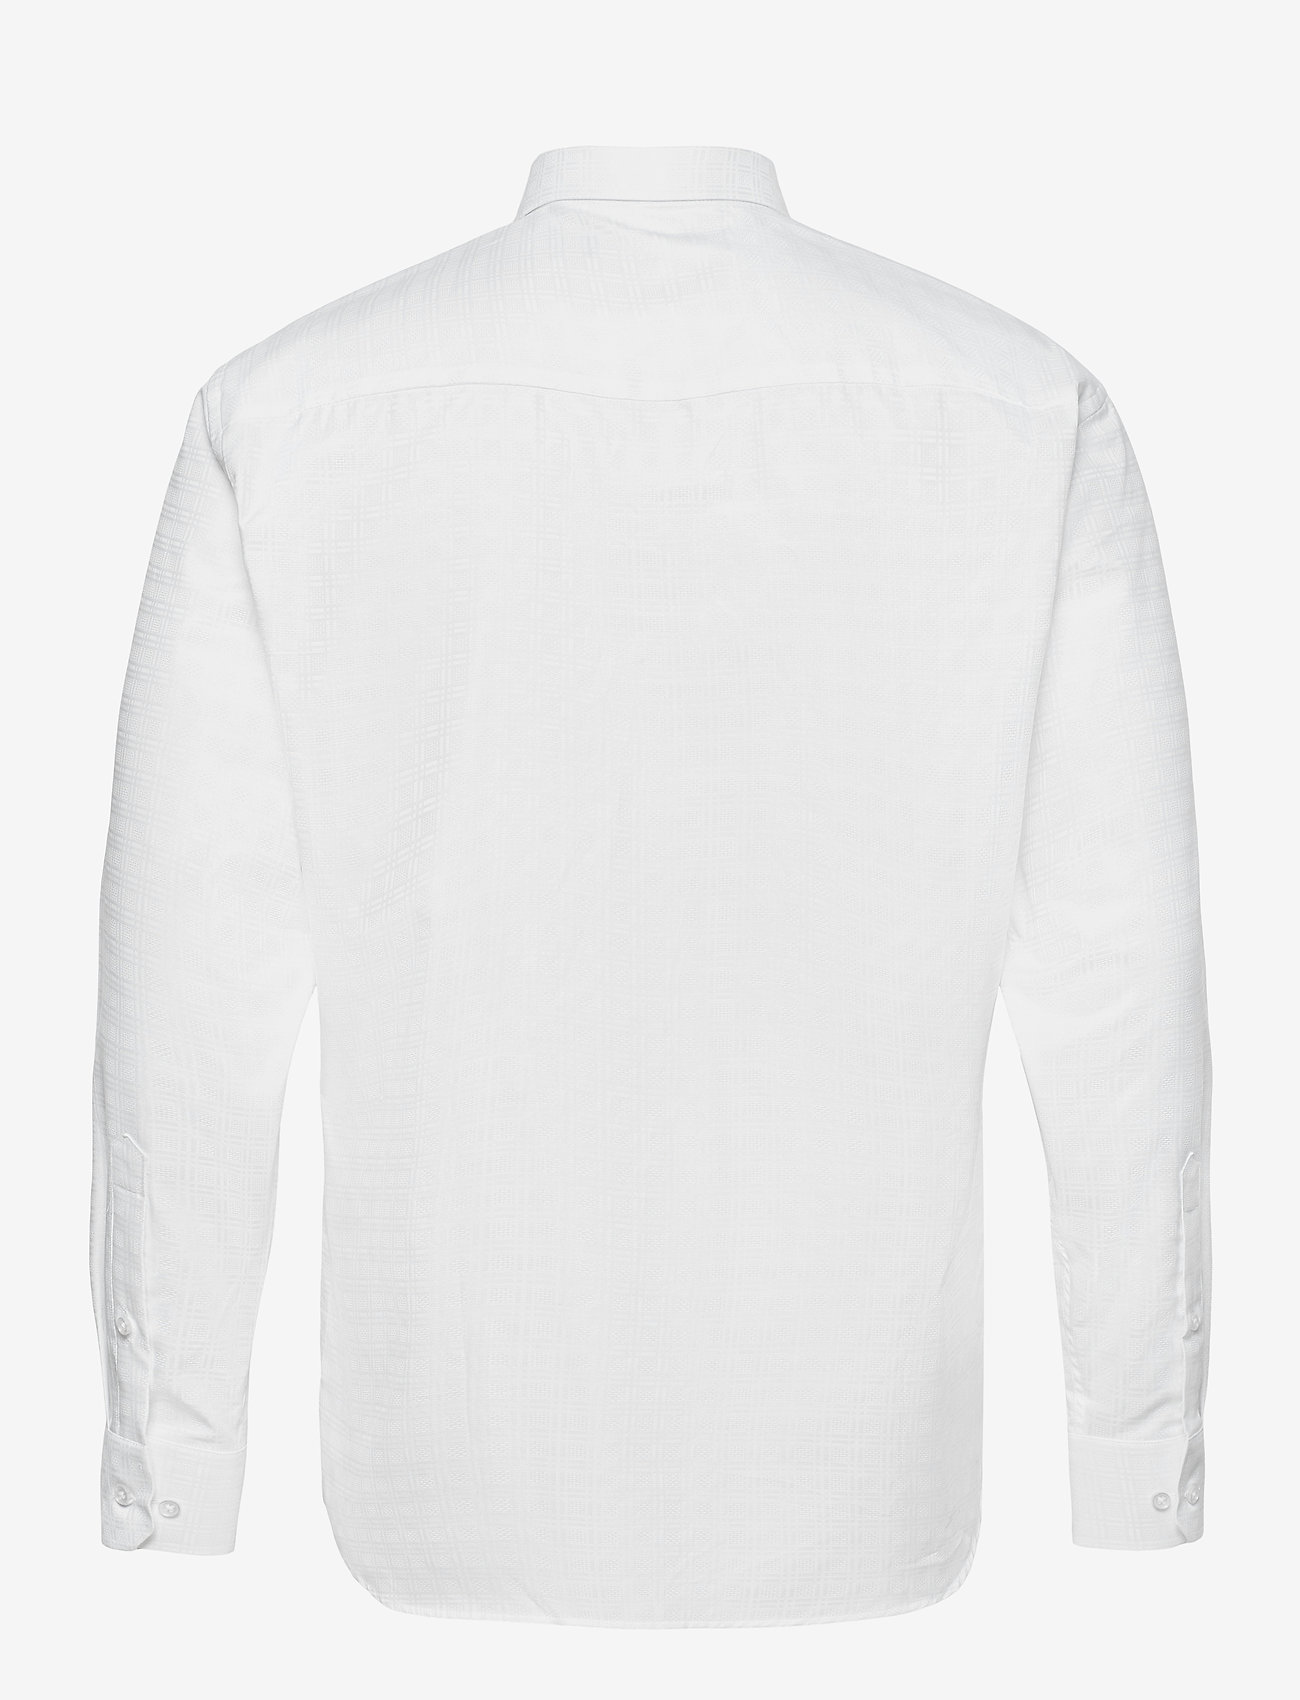 Bosweel Shirts Est. 1937 - 2PLY pattern in white - chemises basiques - white - 1